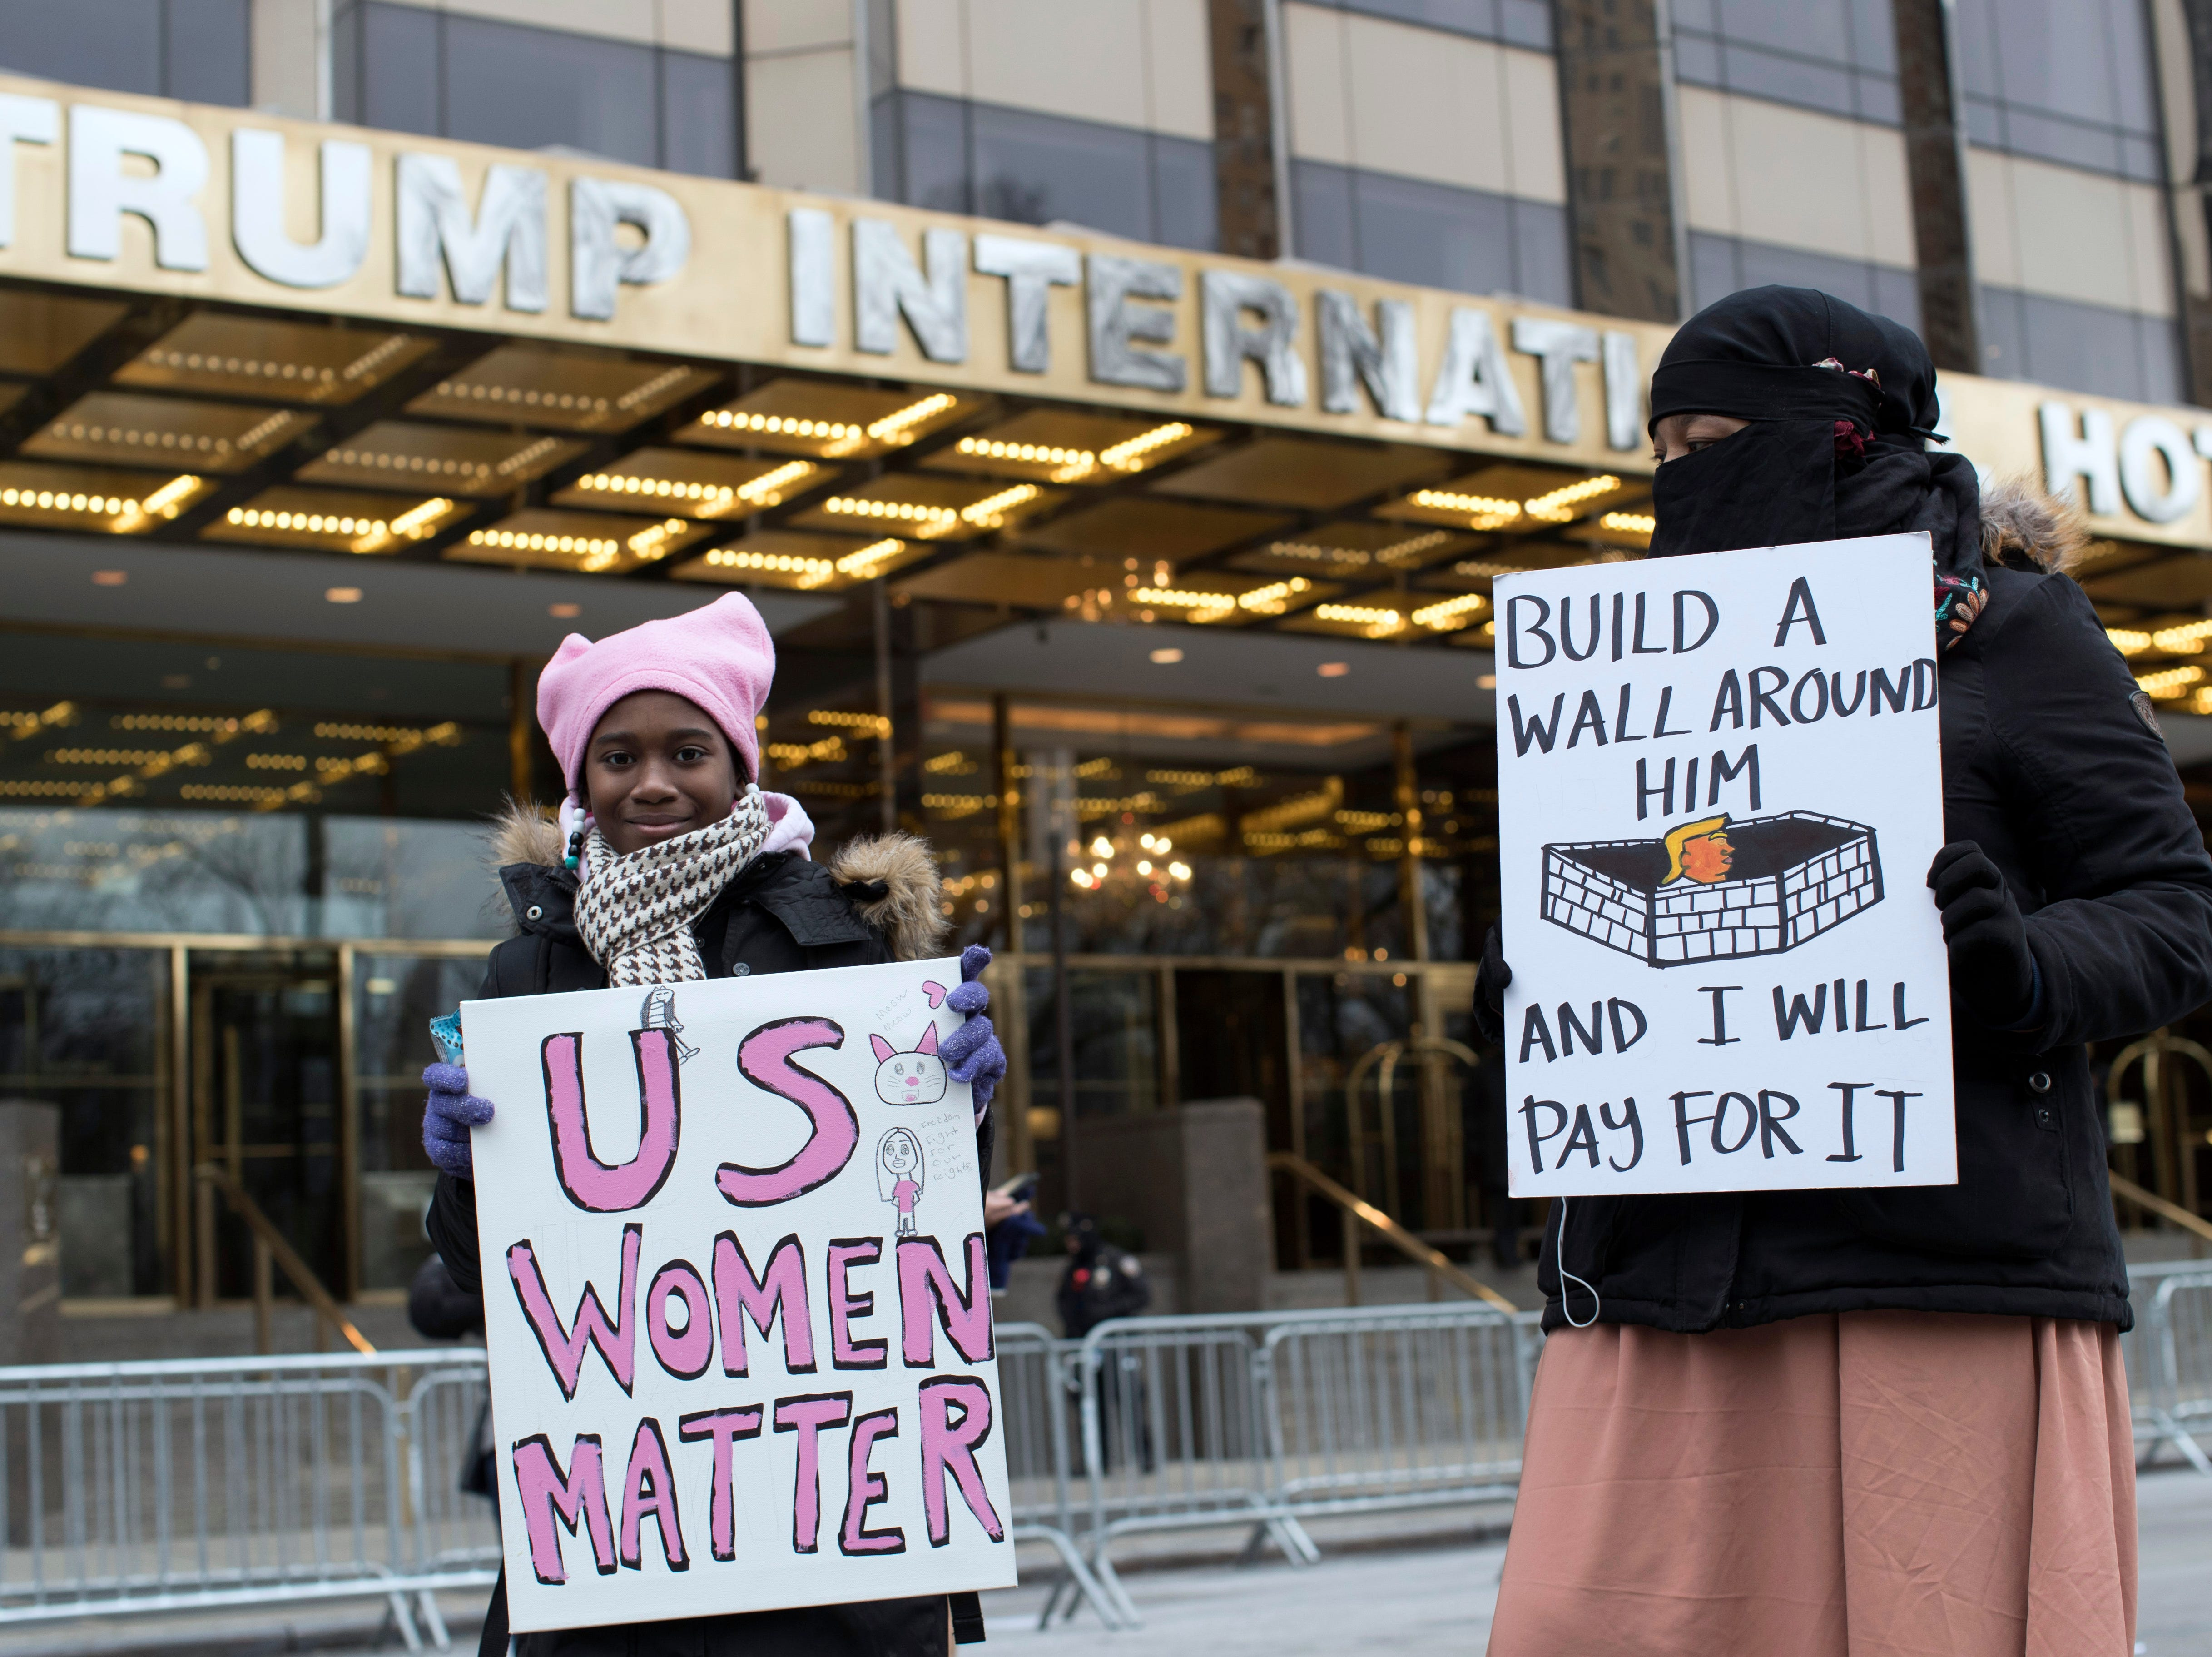 Demonstrators march past the Trump International Hotel and Tower during the Womens's March Alliance, Saturday, Jan. 19, 2019, in New York. One procession, a march through midtown Manhattan, is being organized by the Women's March Alliance, a nonprofit group whose leaders are putting on their demonstration for the third straight year. Another event, a downtown Manhattan rally held at roughly the same time Saturday, is being organized by the New York City chapter of Women's March Inc., the group formed to help organize the 2017 demonstration in Washington, D.C.